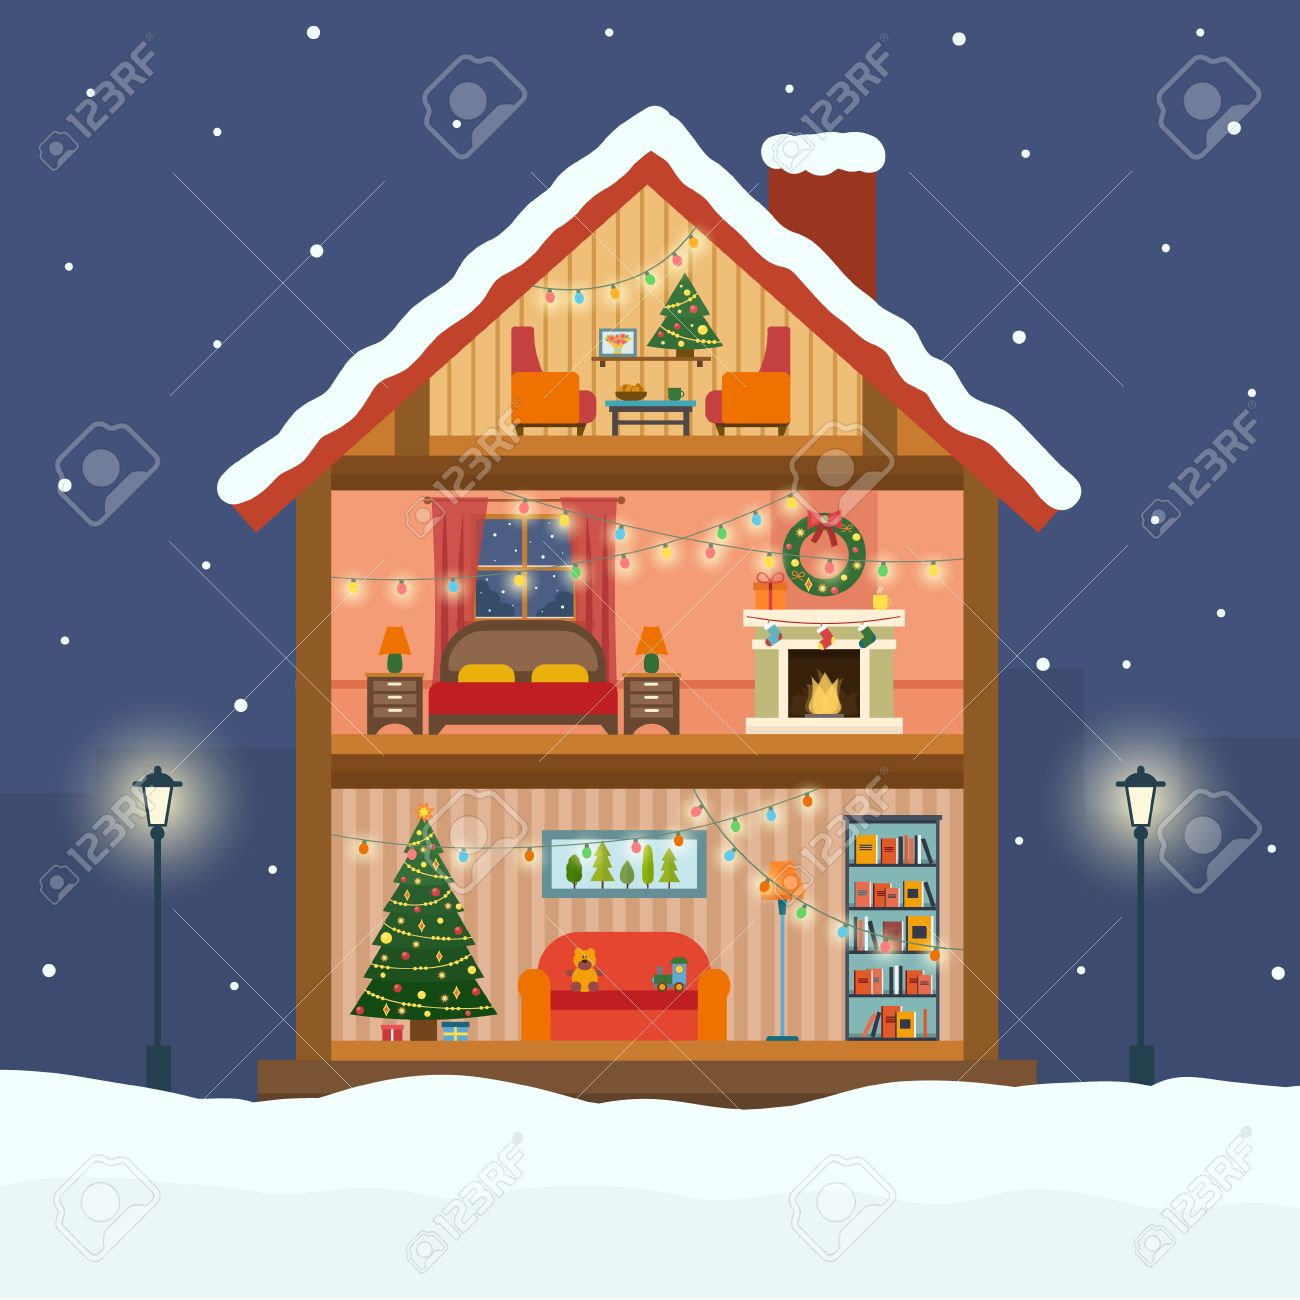 Christmas house with snow art - Christmas House In Cut With Snow House Interior With A Furniture Fireplace Christmas